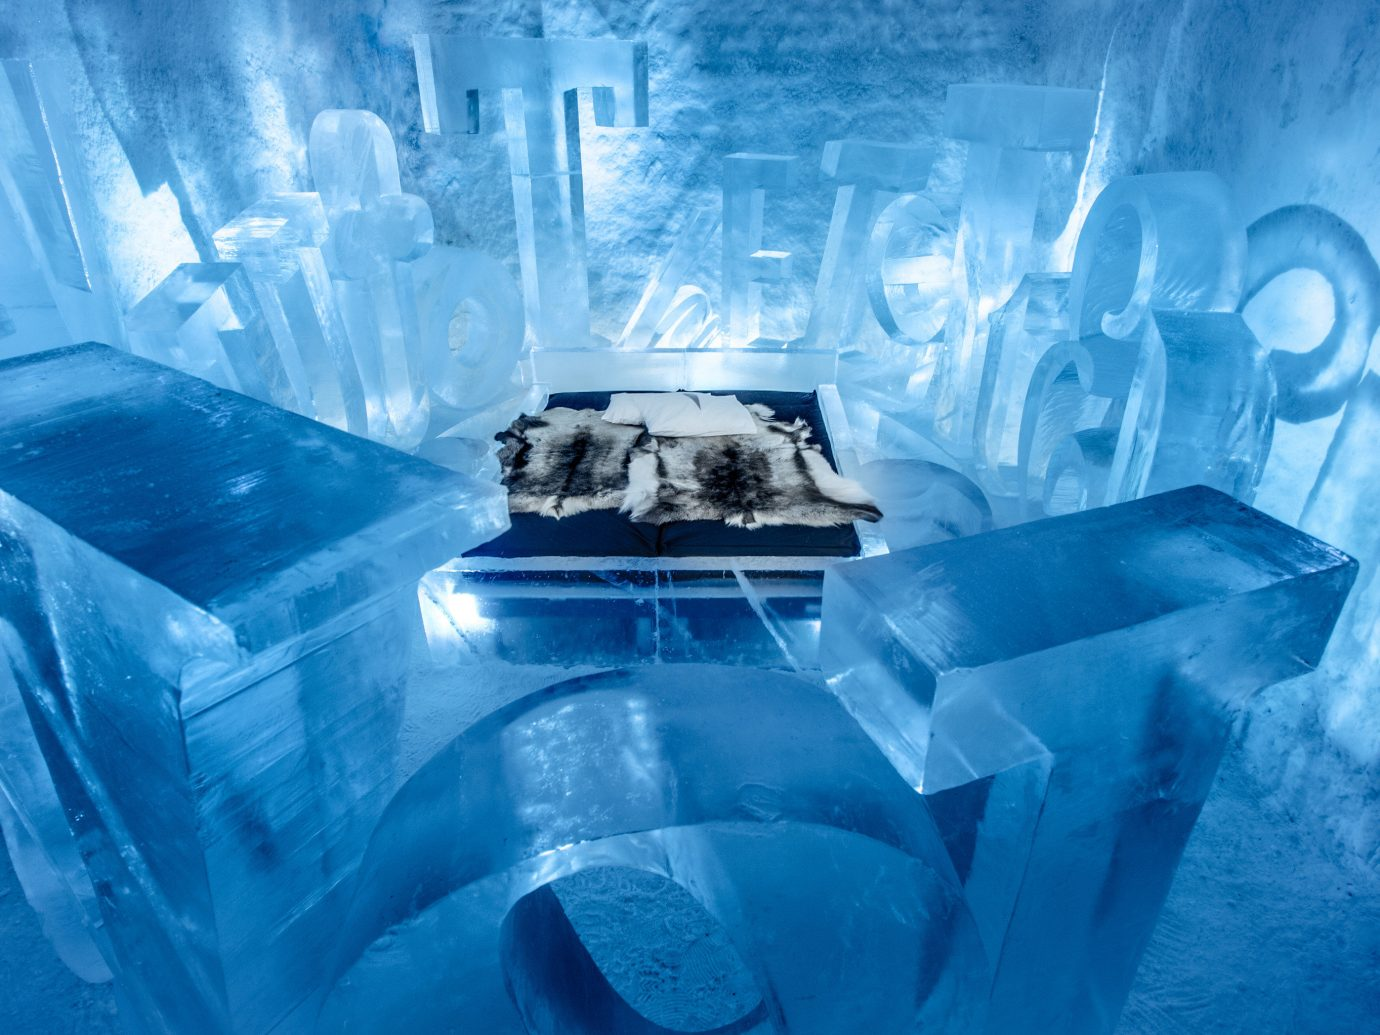 Winter blue ice hotel ice arctic freezing water computer wallpaper melting glacial landform ice cave dirty trash